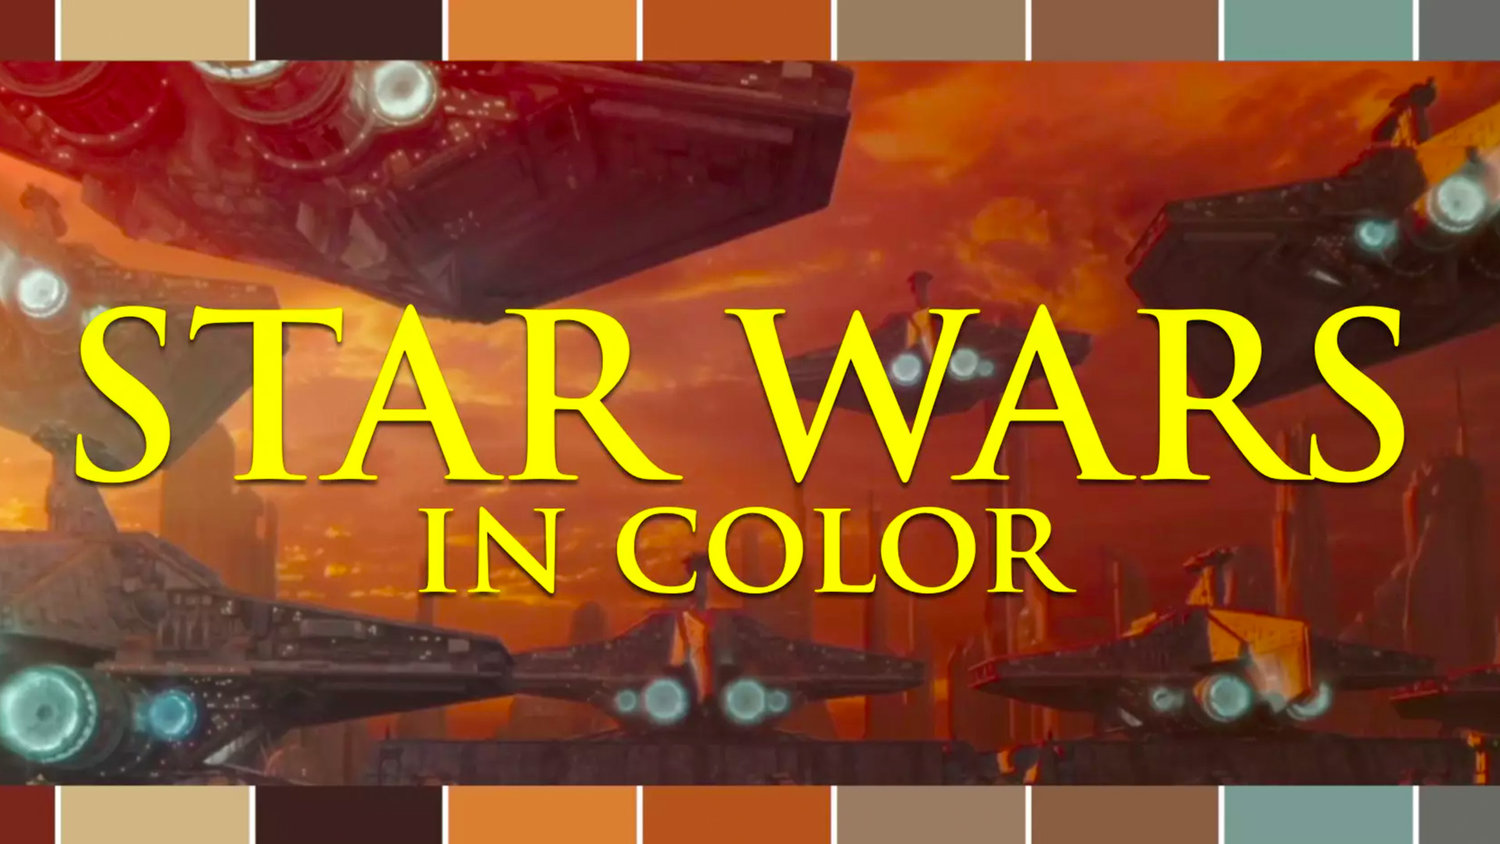 Tour the Color Palette of the Entire STAR WARS Universe in One Minute Video